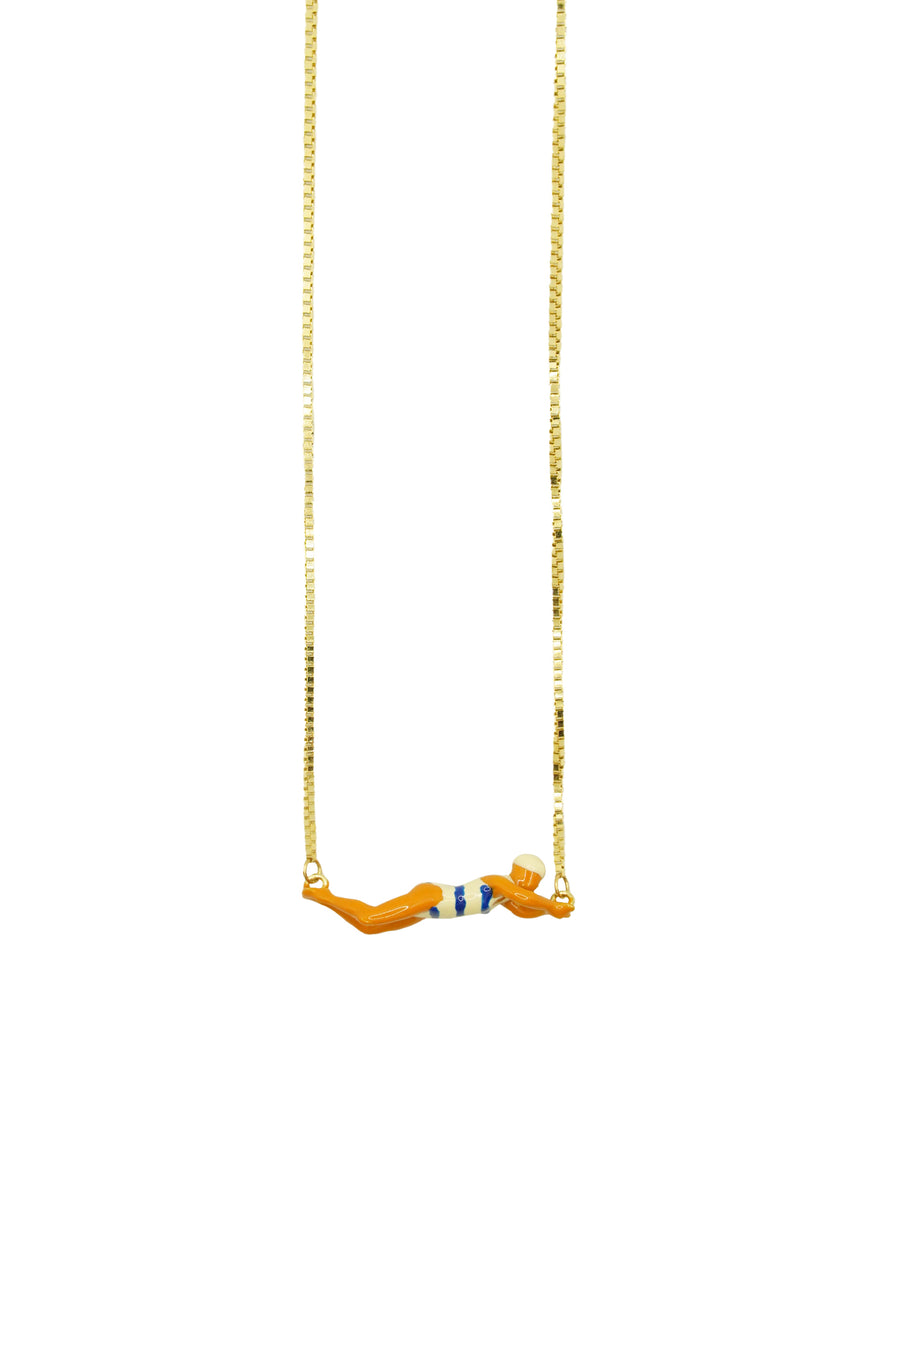 9K Yellow Gold Striped Swimmer Necklace in Blue/White